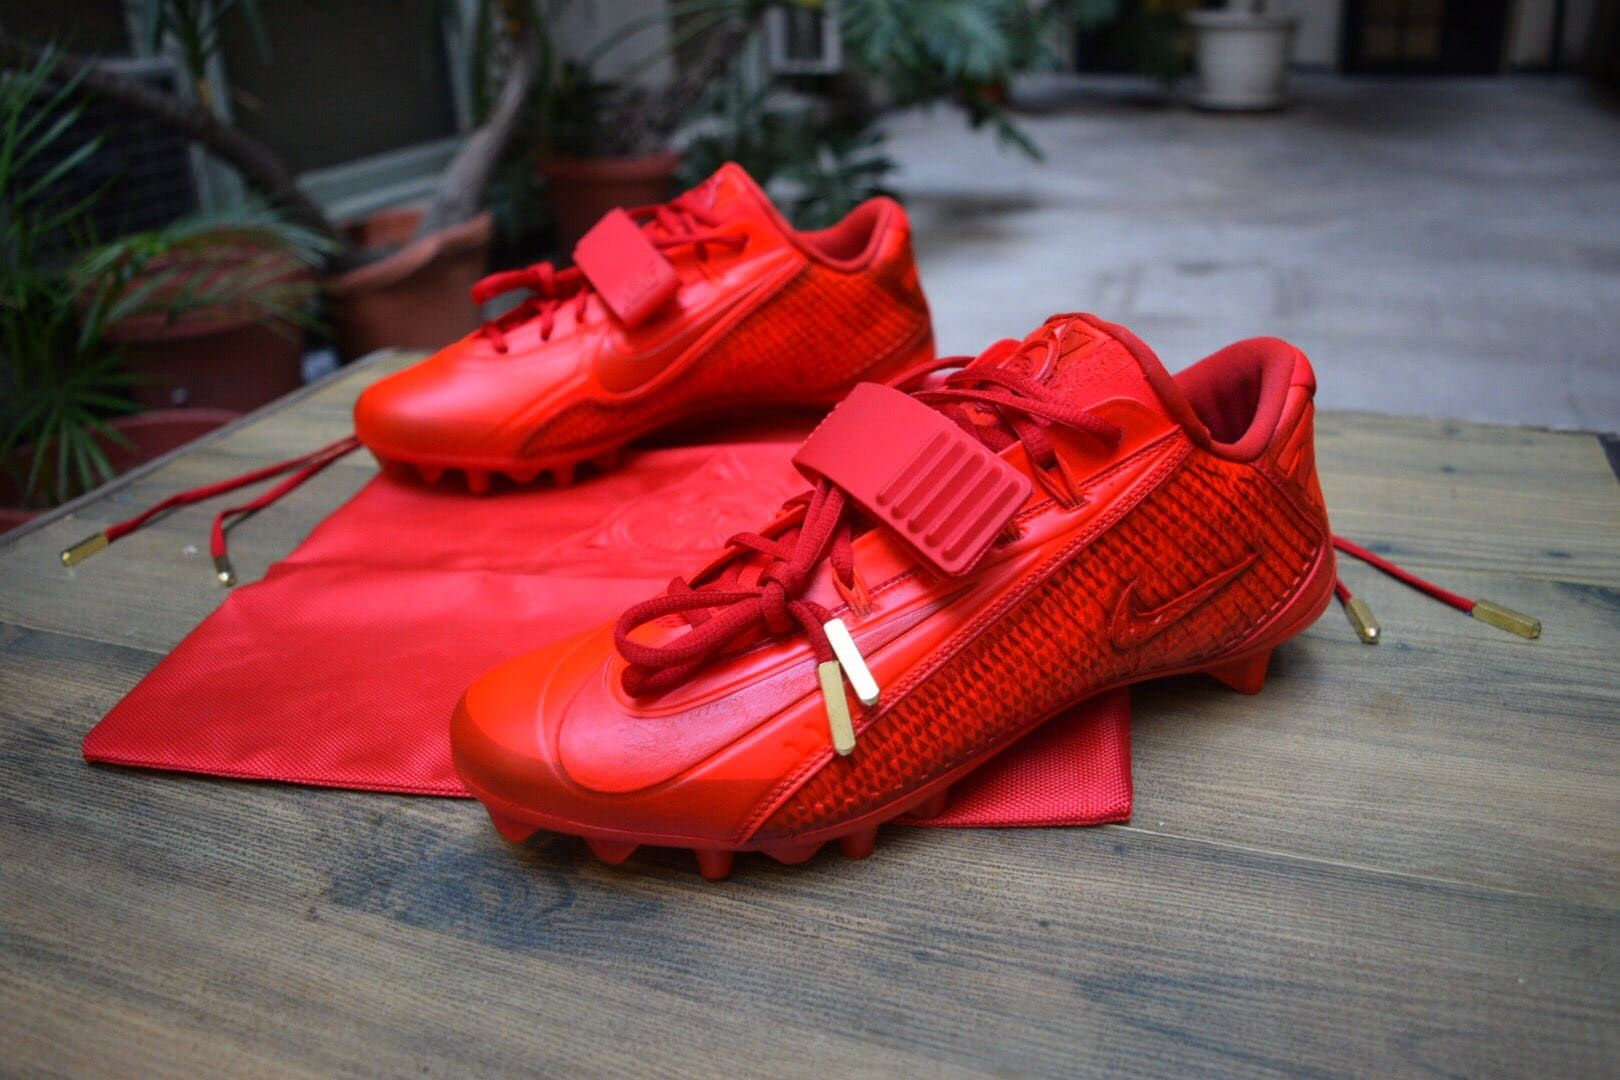 f7e2078d53c0 Red October Yeezy Cleats Odell Beckham by Kickasso | Football Gear ...